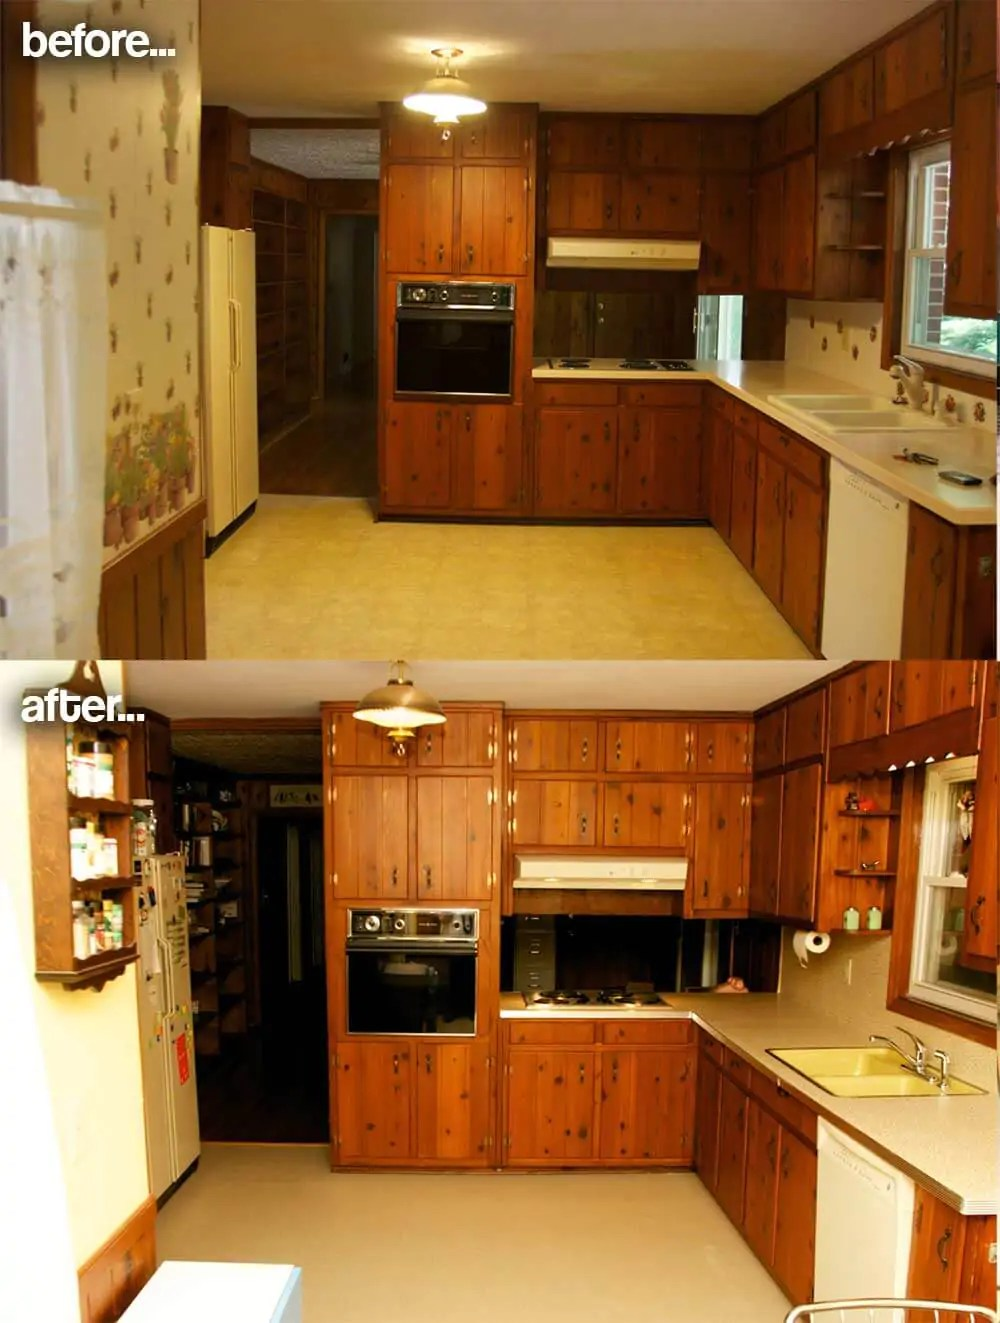 cheap kitchen flooring viking appliances amber's 1961 knotty pine before and after retro ...